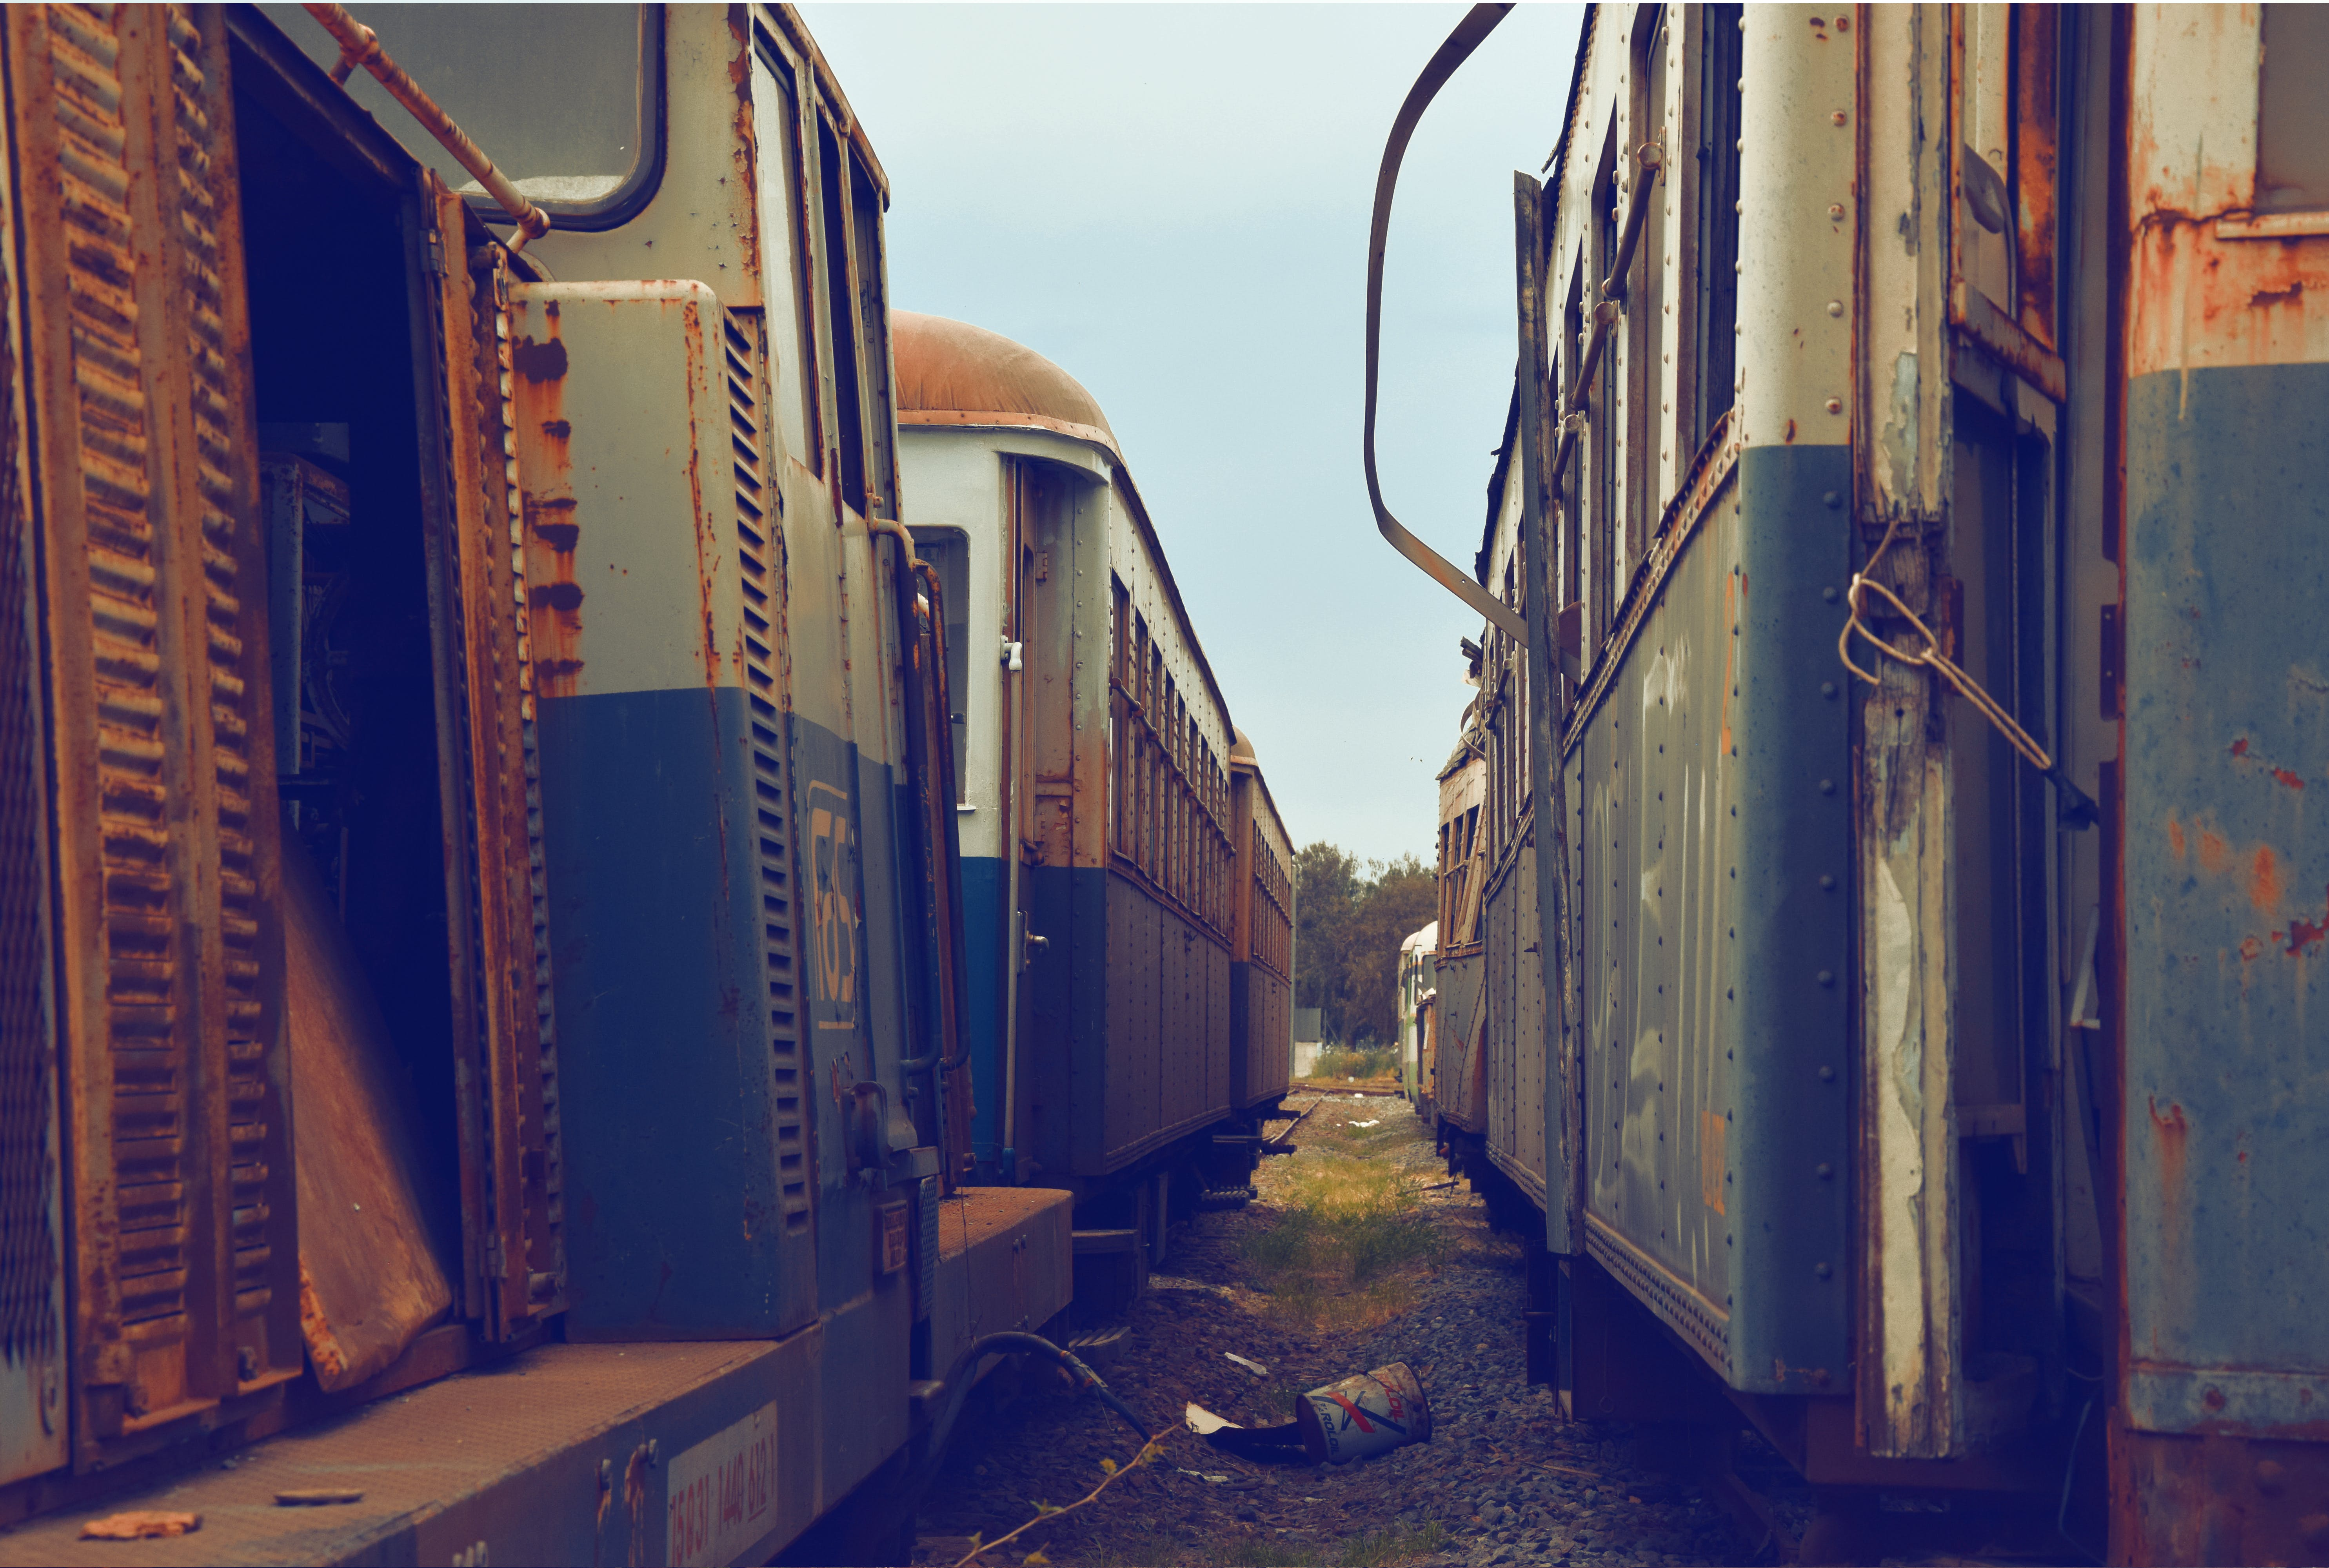 Free stock photo of train, vintage, rust, colors